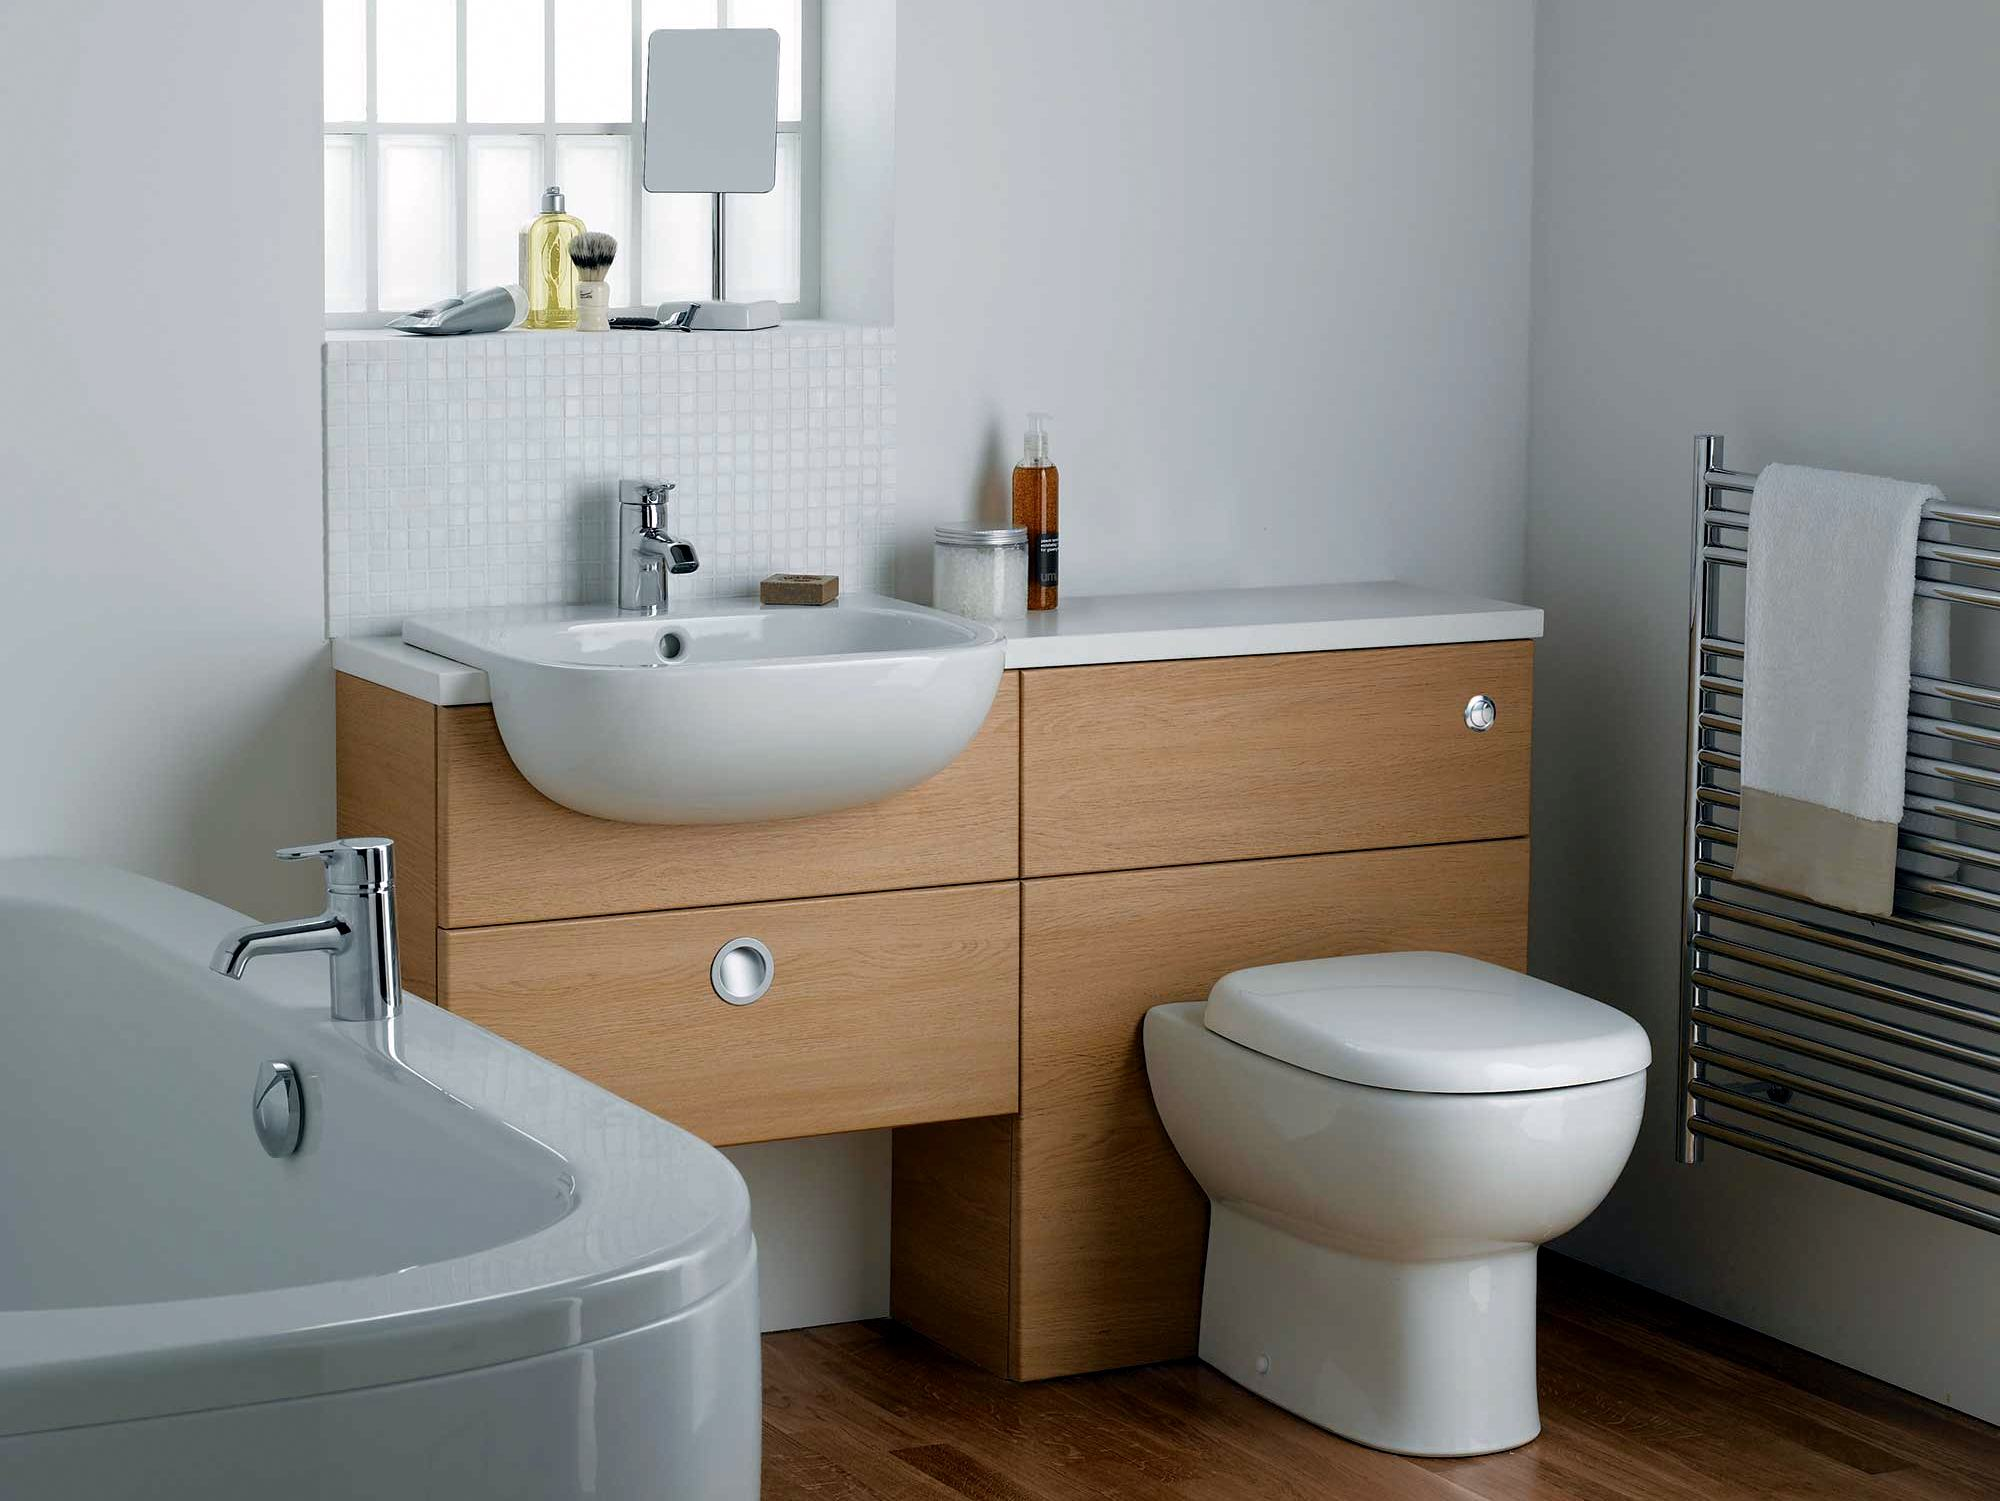 Ideal Standard Toilet : Ideal standard modern styles at affordable prices uk bathrooms